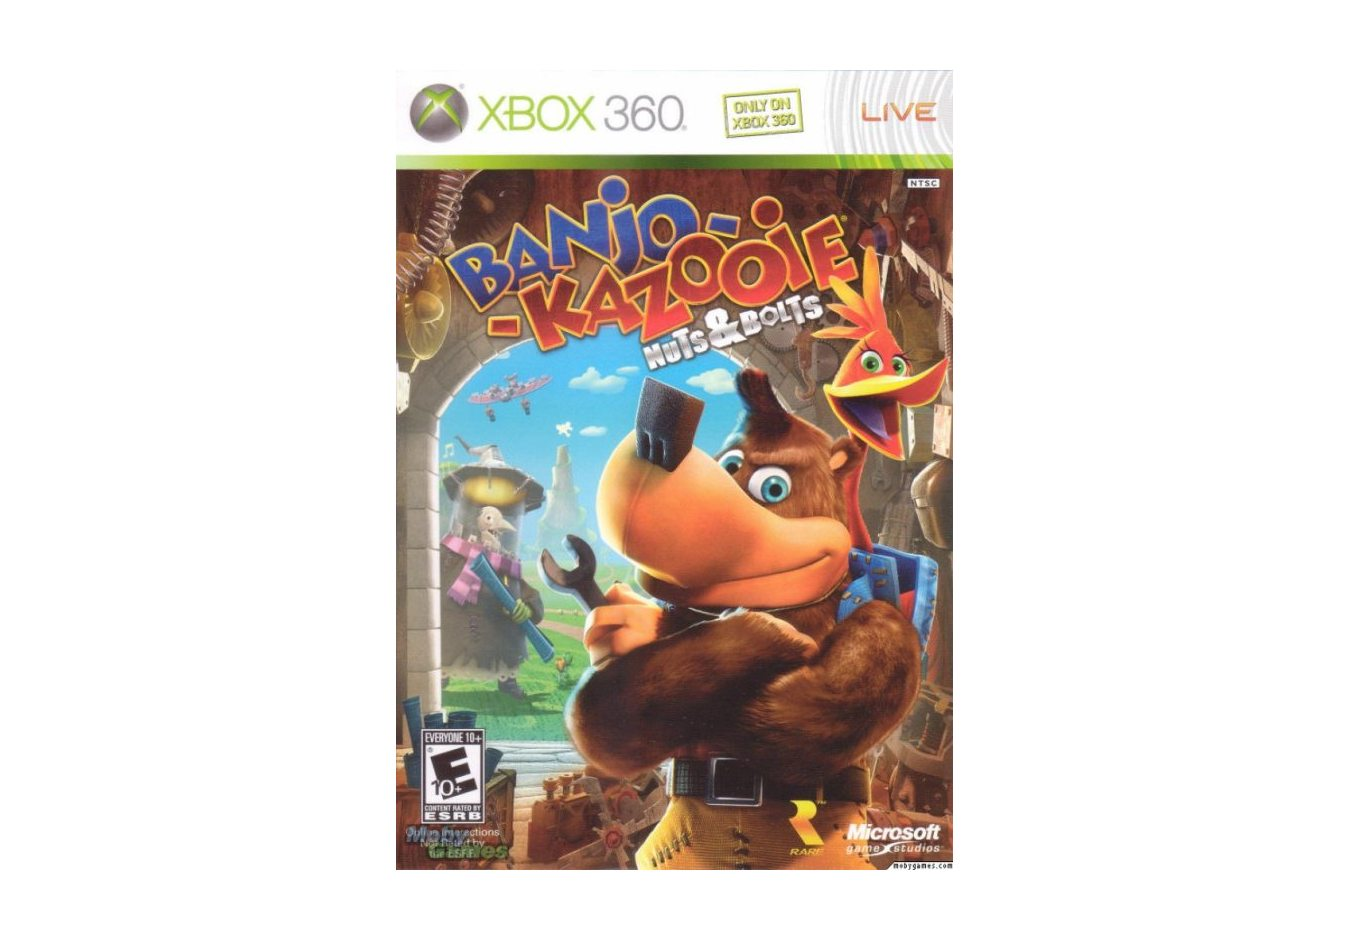 Xbox 360 Banjo-Kazooie: Nuts and Bolts Xbox 360